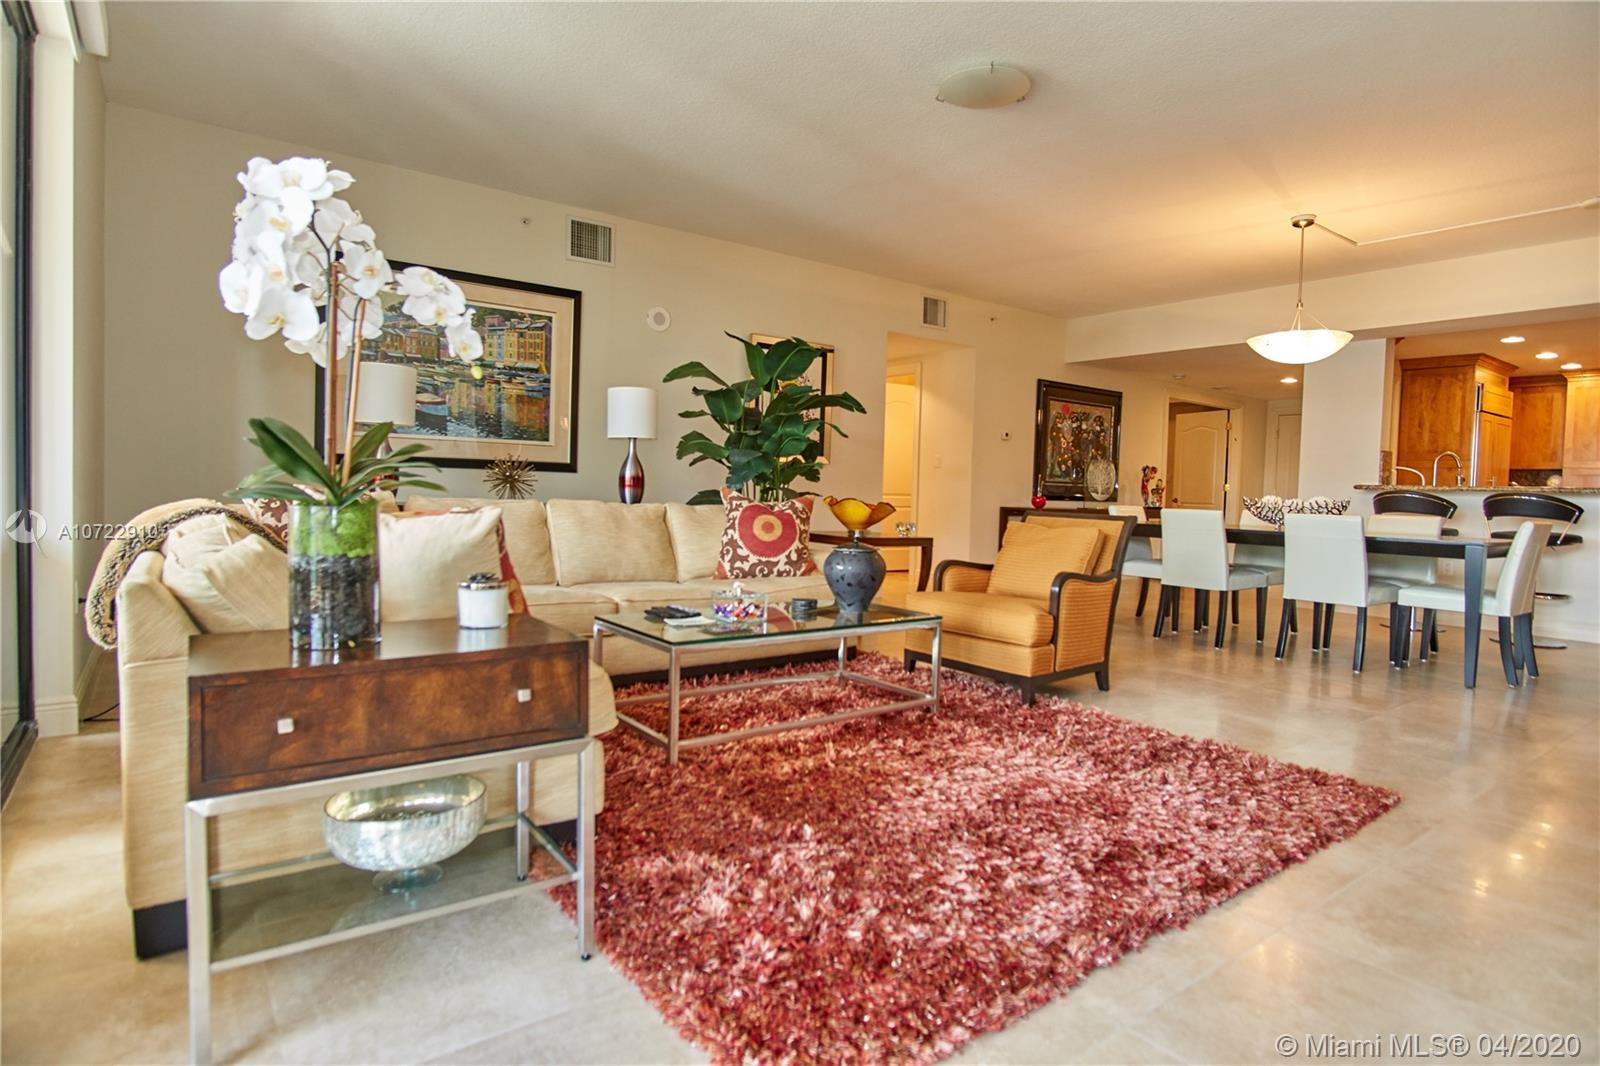 Excellent and Prestigious location at The Point ! Resort Lifestile in Down Town Boca Raton, 5 minute